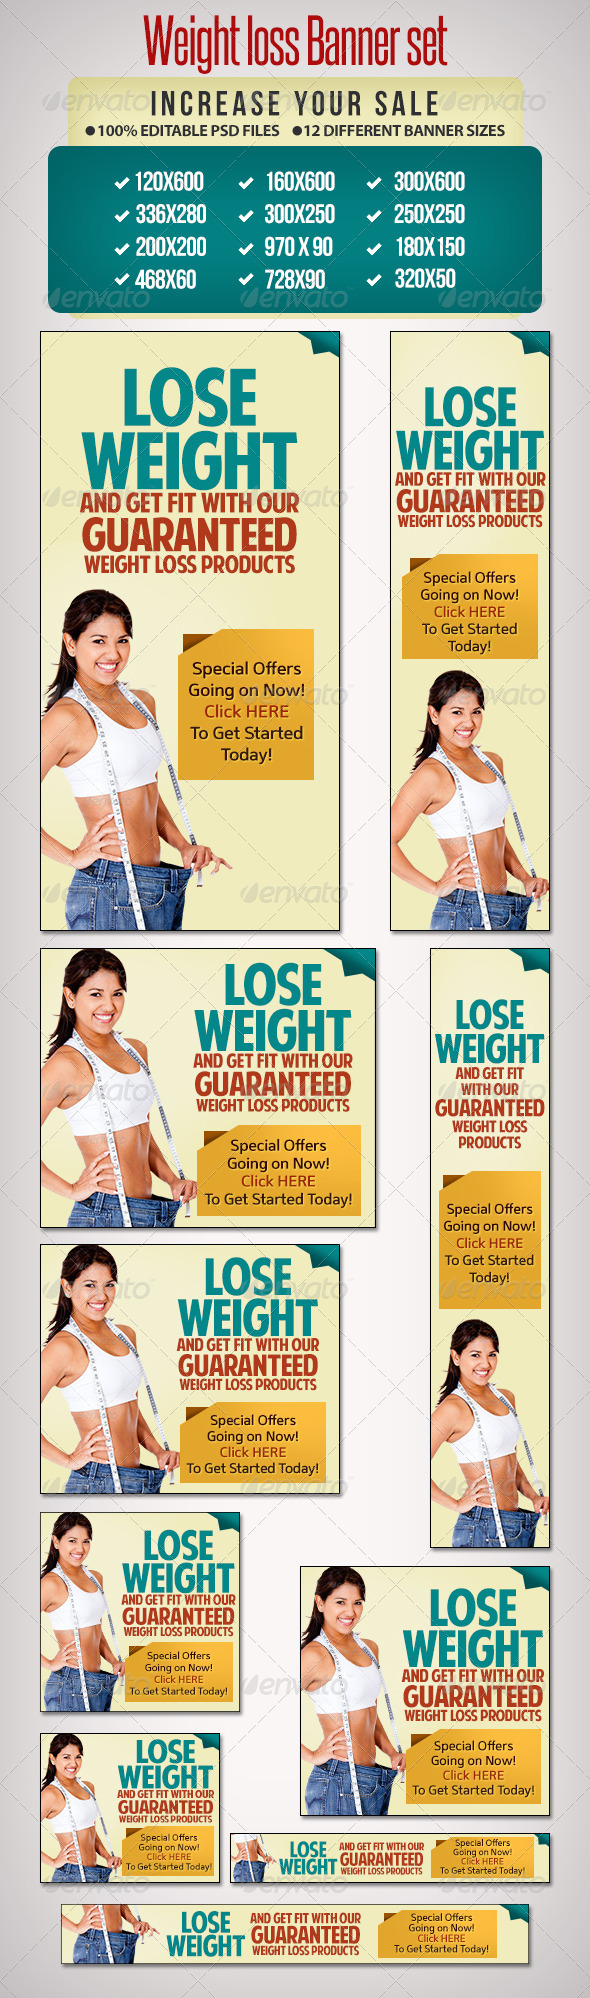 Weightloss Banner Set 4 - 12 Google Standard Sizes - Banners & Ads Web Elements